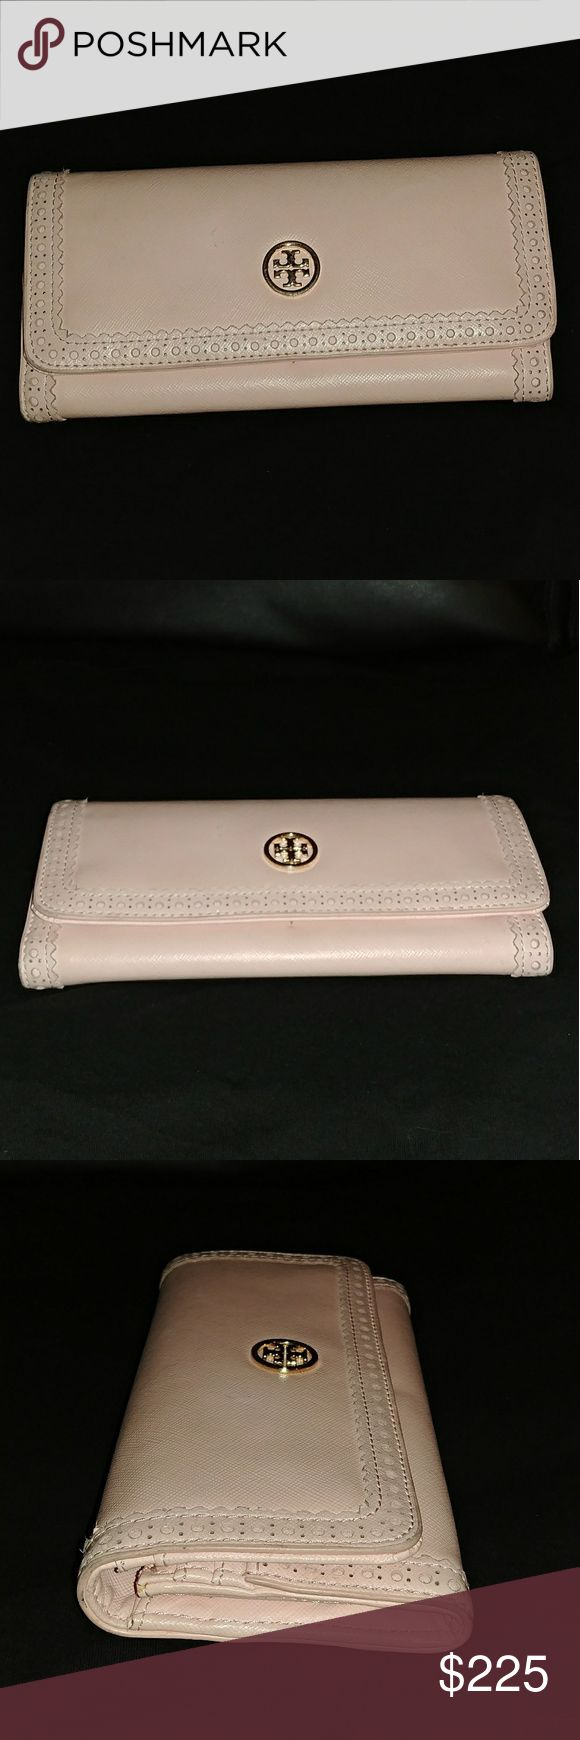 """Tory Buch Pink Shell Continental Envelop Wallet Rare! Sold Out everywhere! Tory Burch Robinson wallet is trimmed with a borrowed-from-the-boys spectator detail, creating a refined, tailored look.  Saffiano leather with tonal perforated and pinked trim.  Fold-over flap with magnetic snap closure.  Signature Tory Burch double-""""T"""" logo.  Inside, two open compartments, one zip compartment, three bill slots, and 10 card slots.  3 1/2""""H x 7 1/2""""W x 1 1/4""""D.  No tags, no box/bag  Imported of…"""